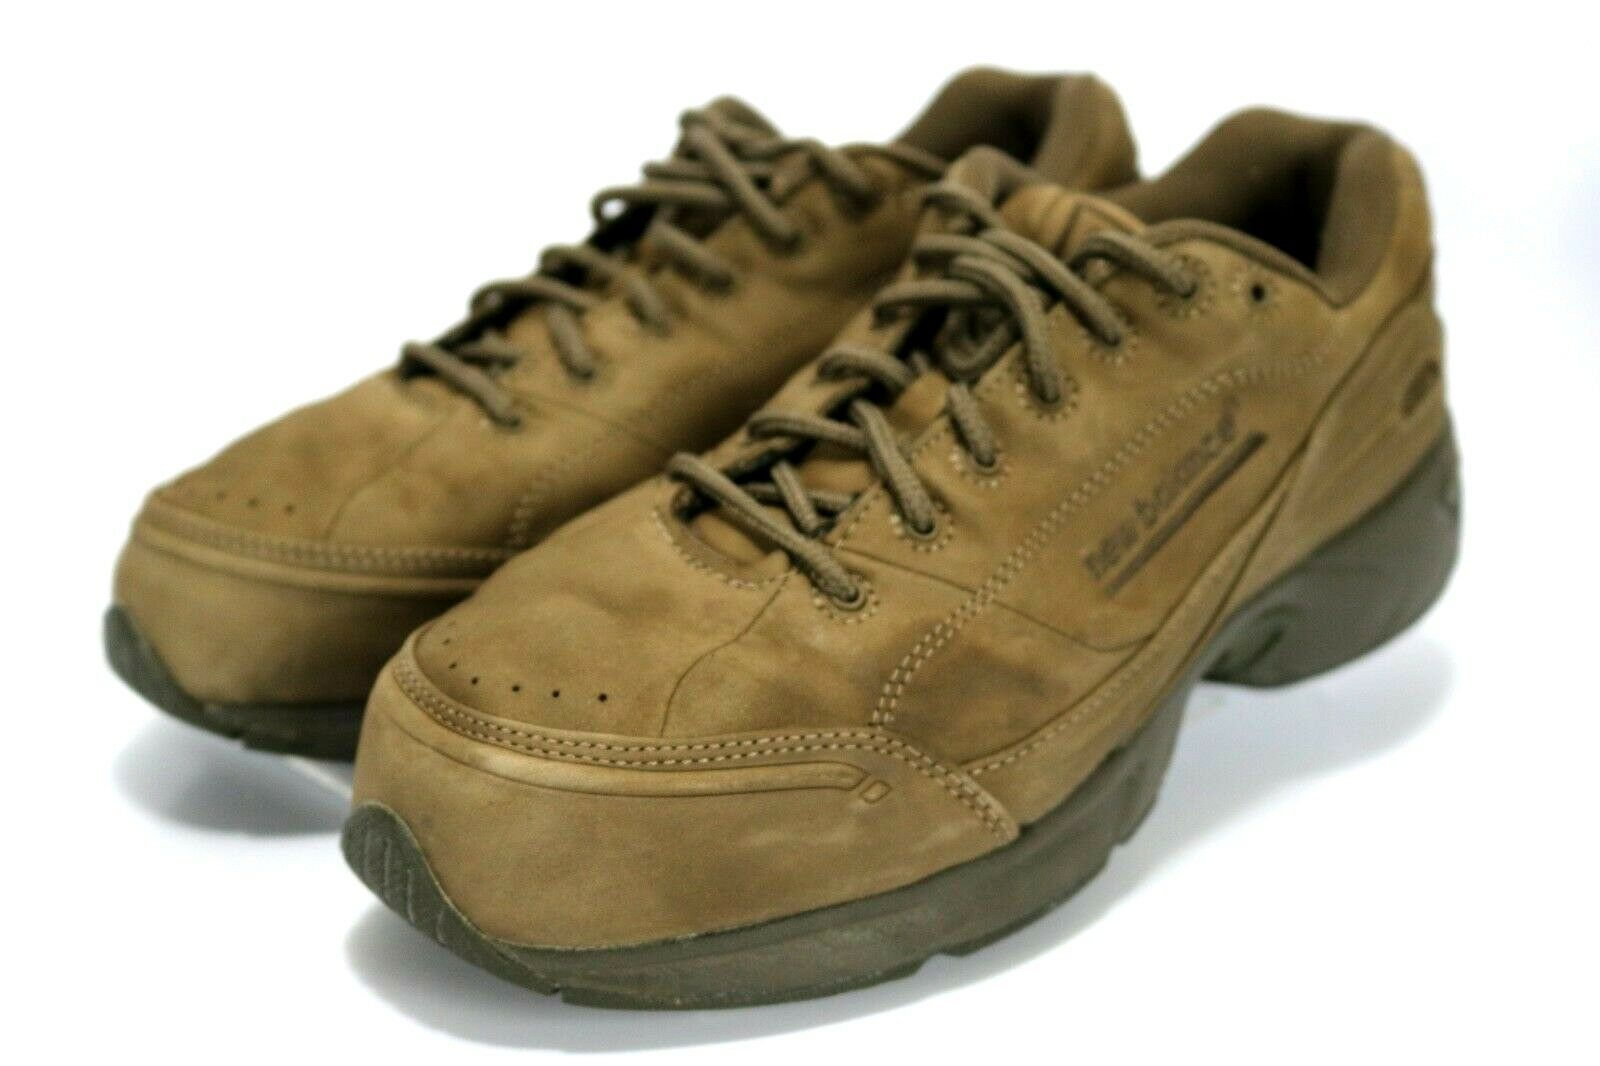 New Balance  189 Men's Leather Walking shoes Size 8 4E Brown